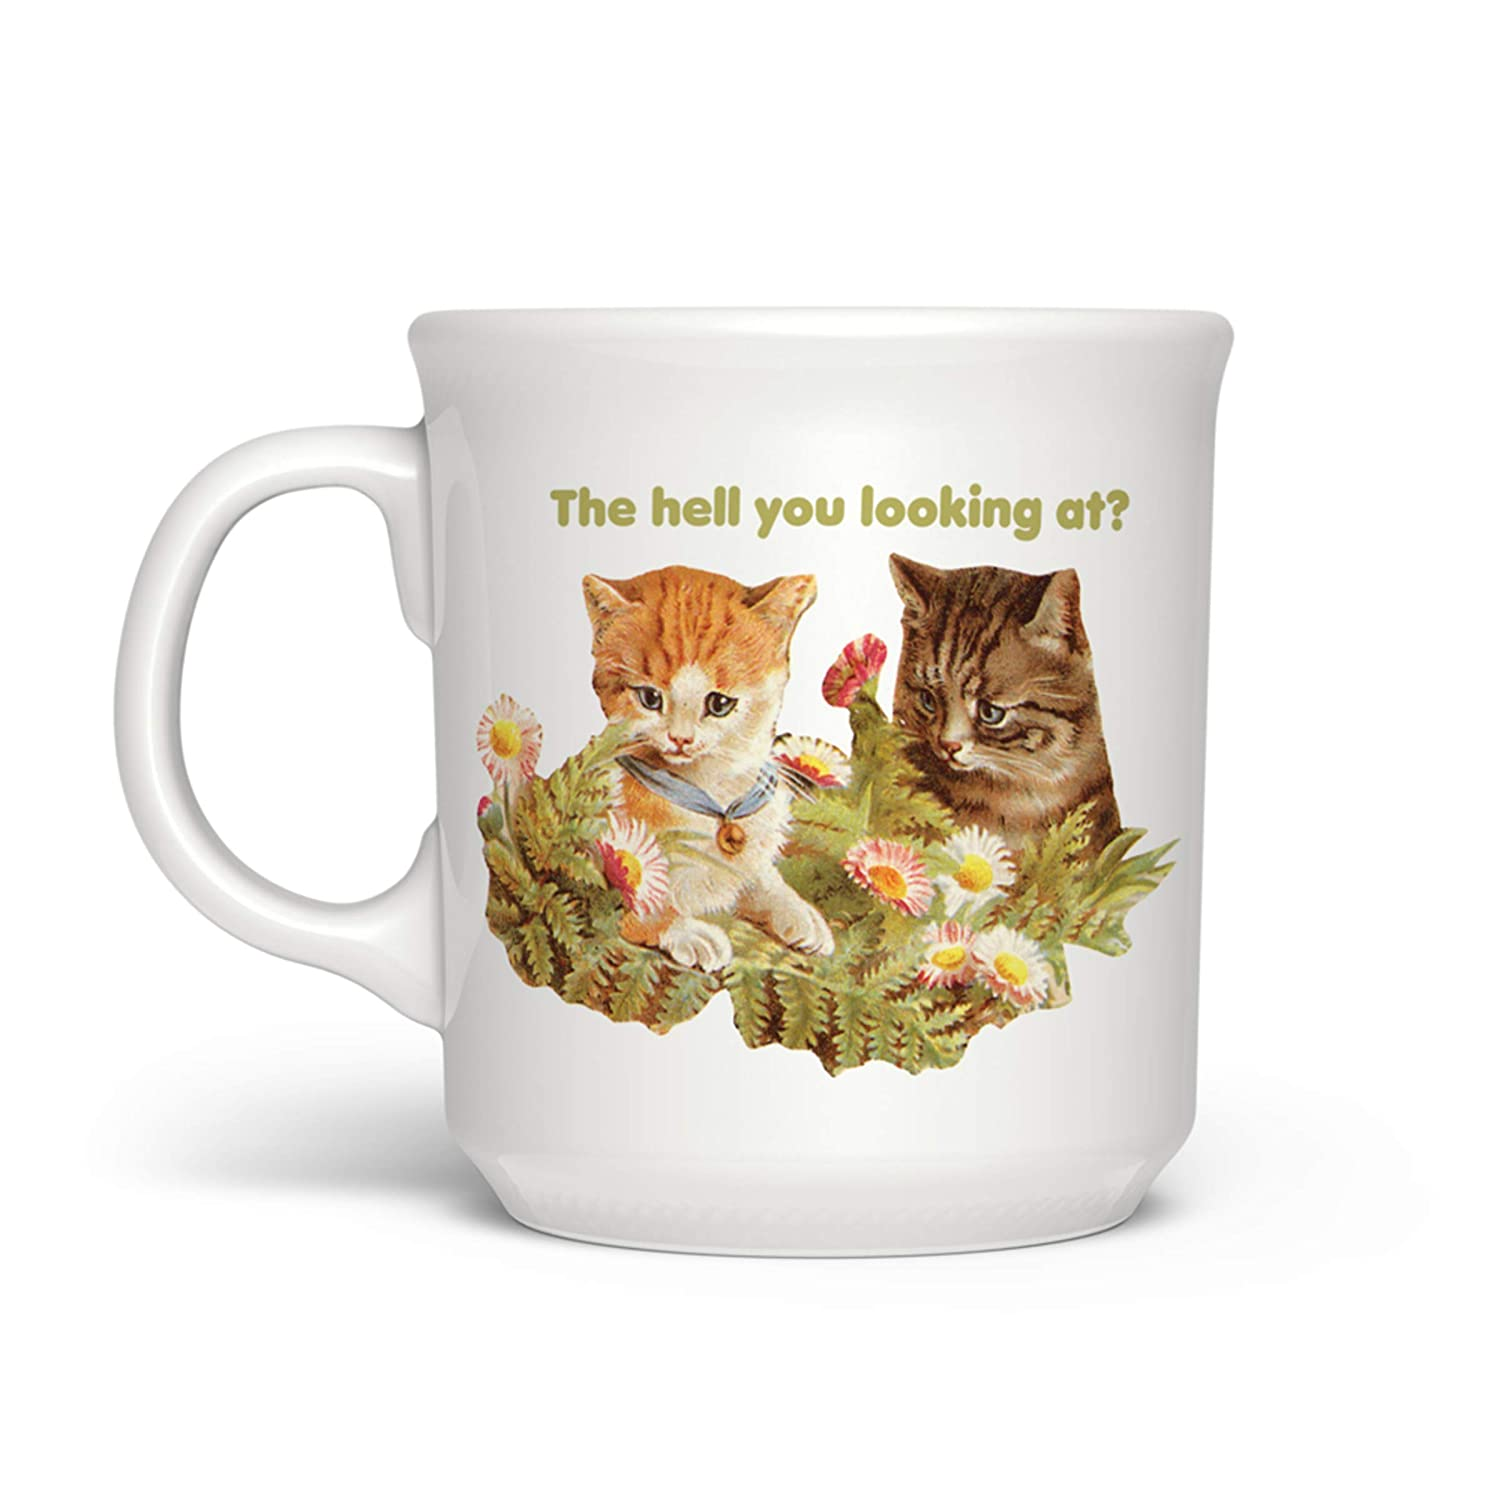 Fred 5239529 SAY ANYTHINGThe Hell You Looking At Mug 16-Ounce Assorted